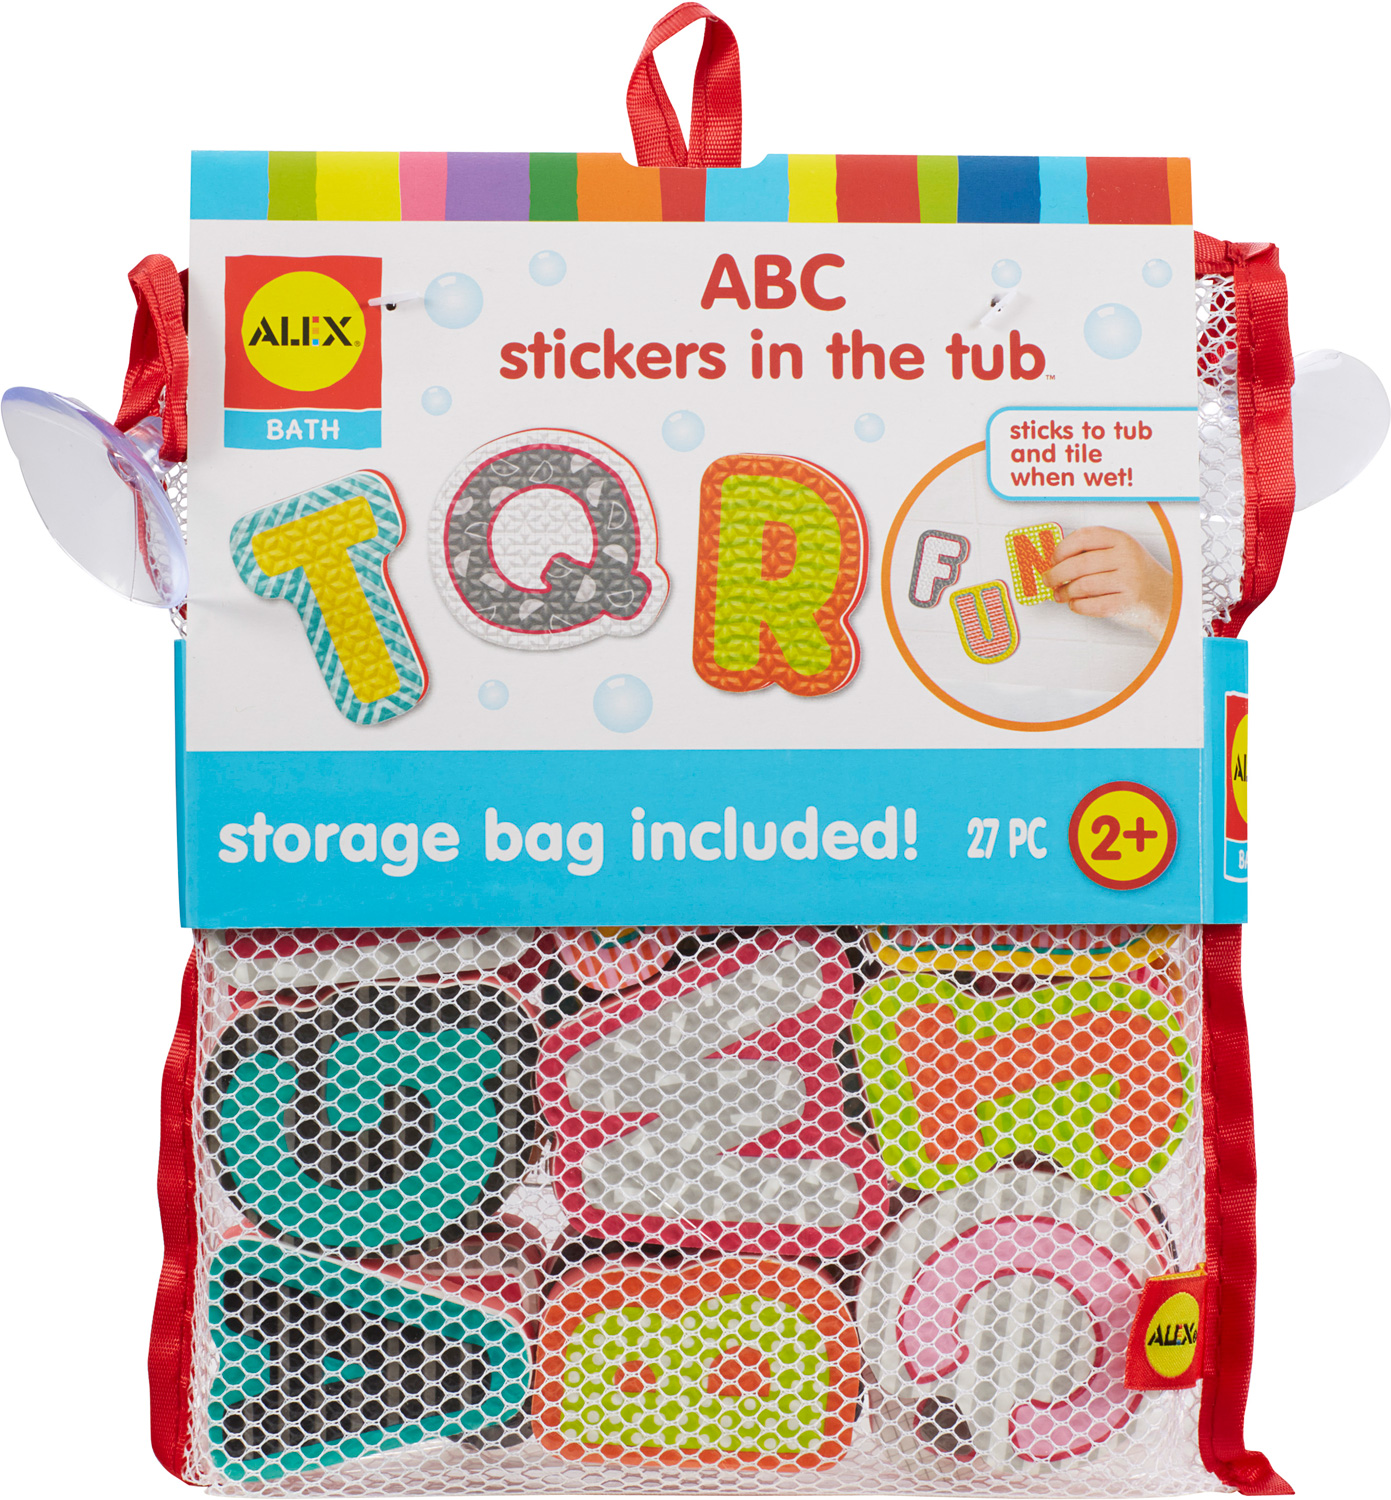 ALEX Bath ABC Stickers in the Tub - The Wooden Toy